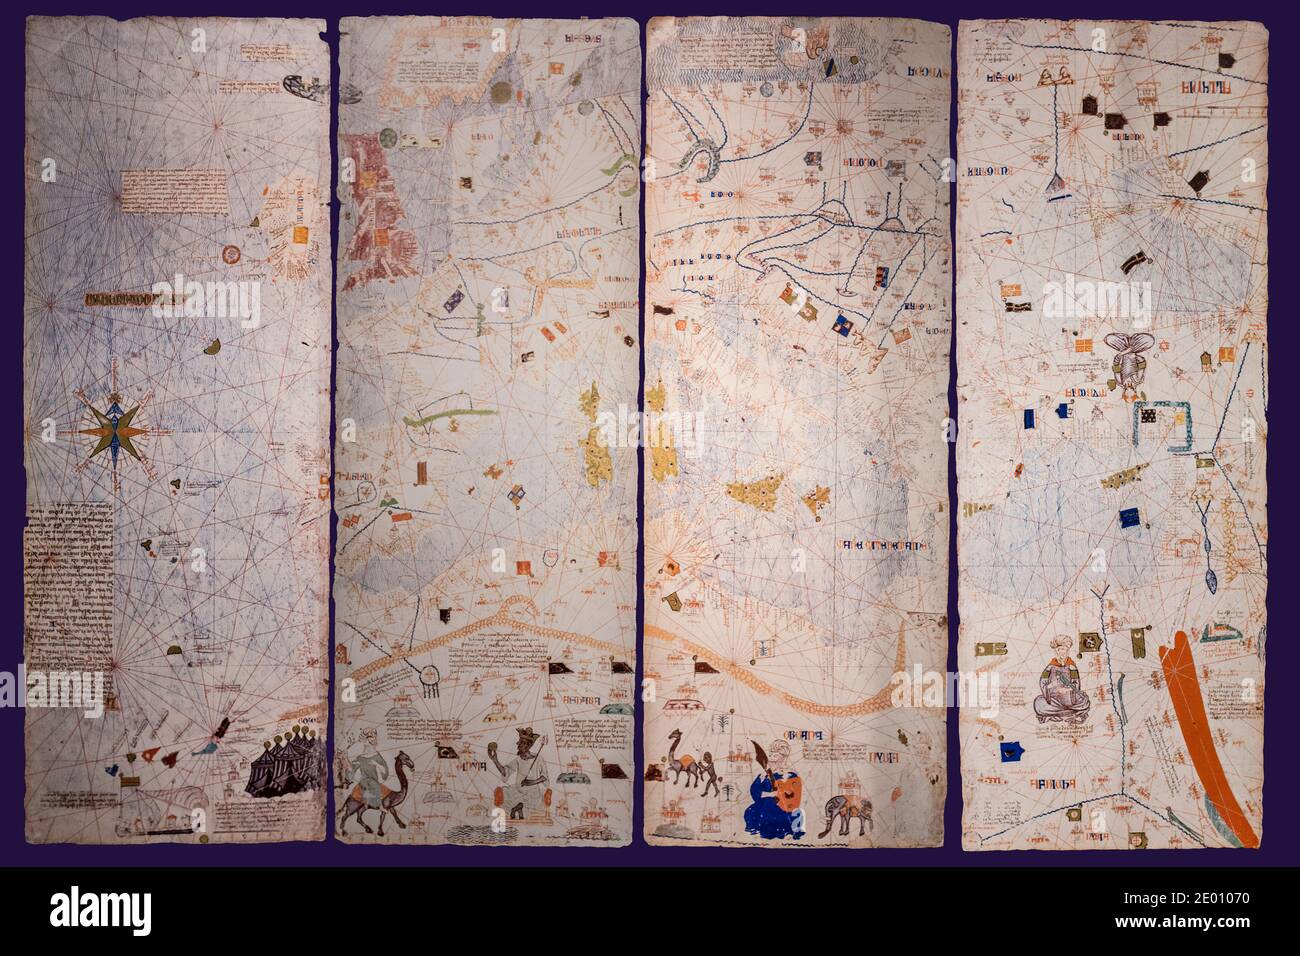 Valladolid, Spain - July 18th, 2020: Catalan Atlas, Medieval world map created in 1375. Reproduction at House Museum of Columbus,  Valladolid, Spain Stock Photo